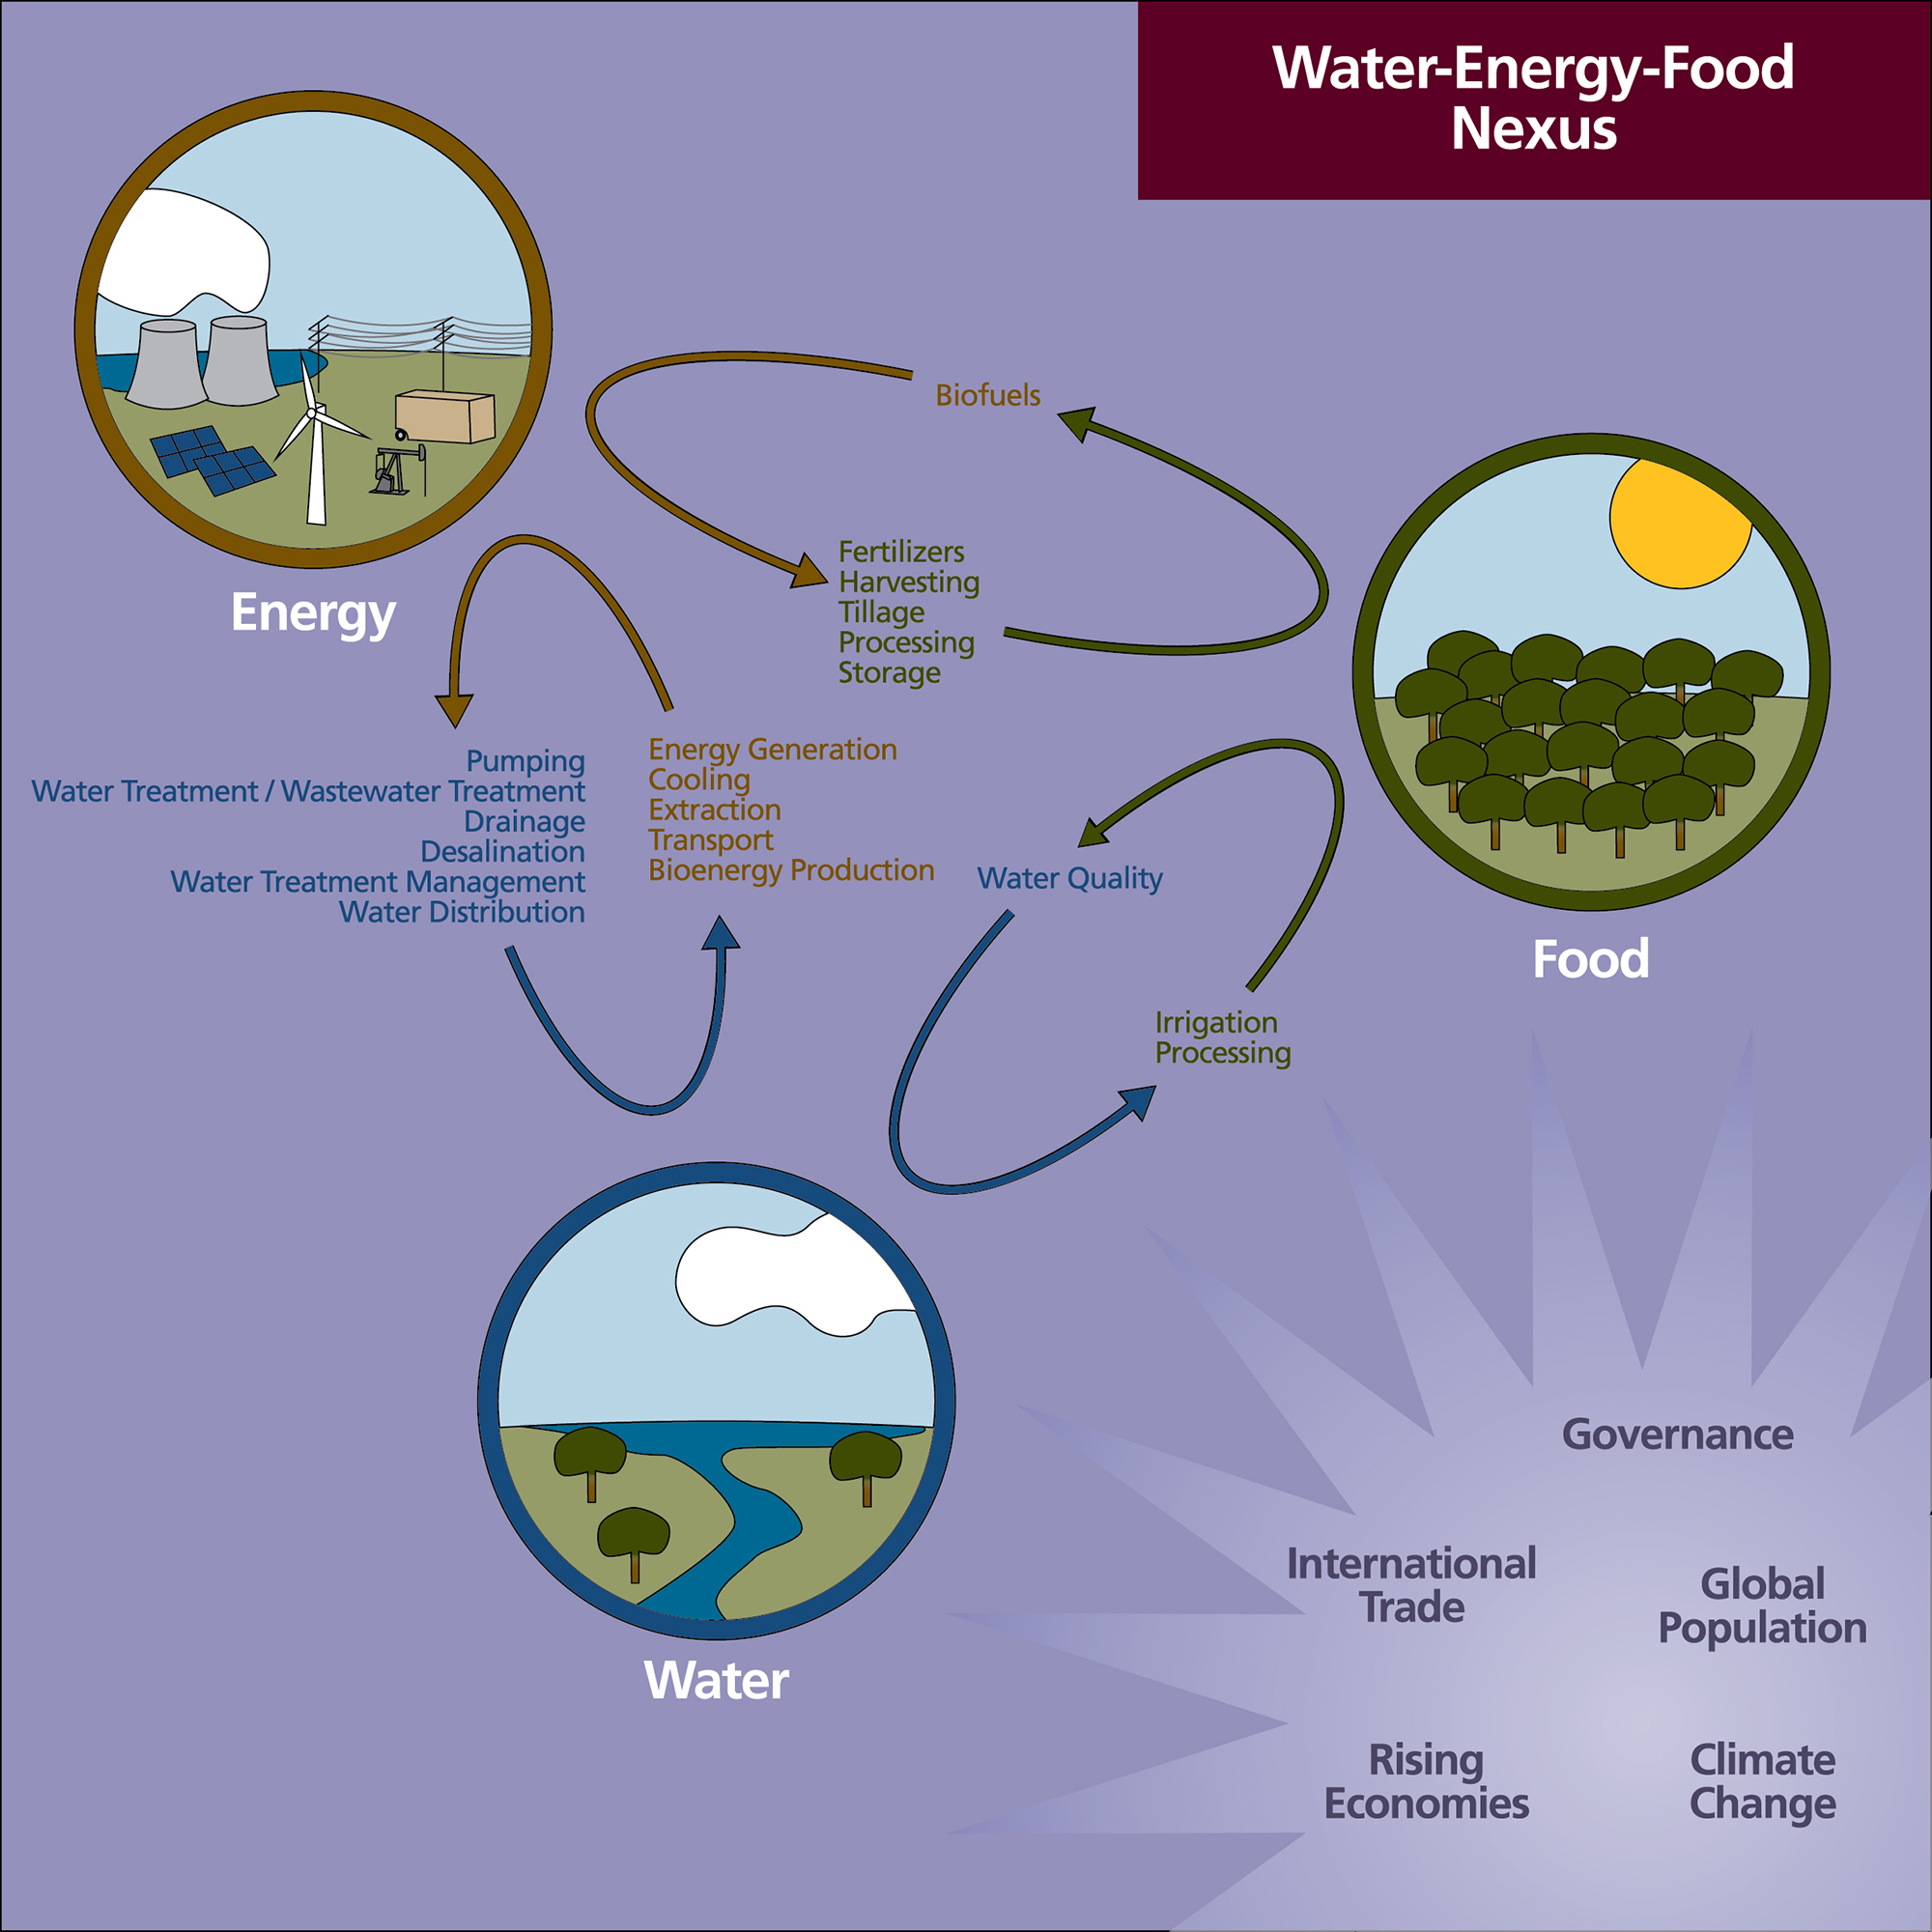 How Often To Change Oil >> Mohtar: Water-Energy-Food Nexus | Texas A&M Energy Institute